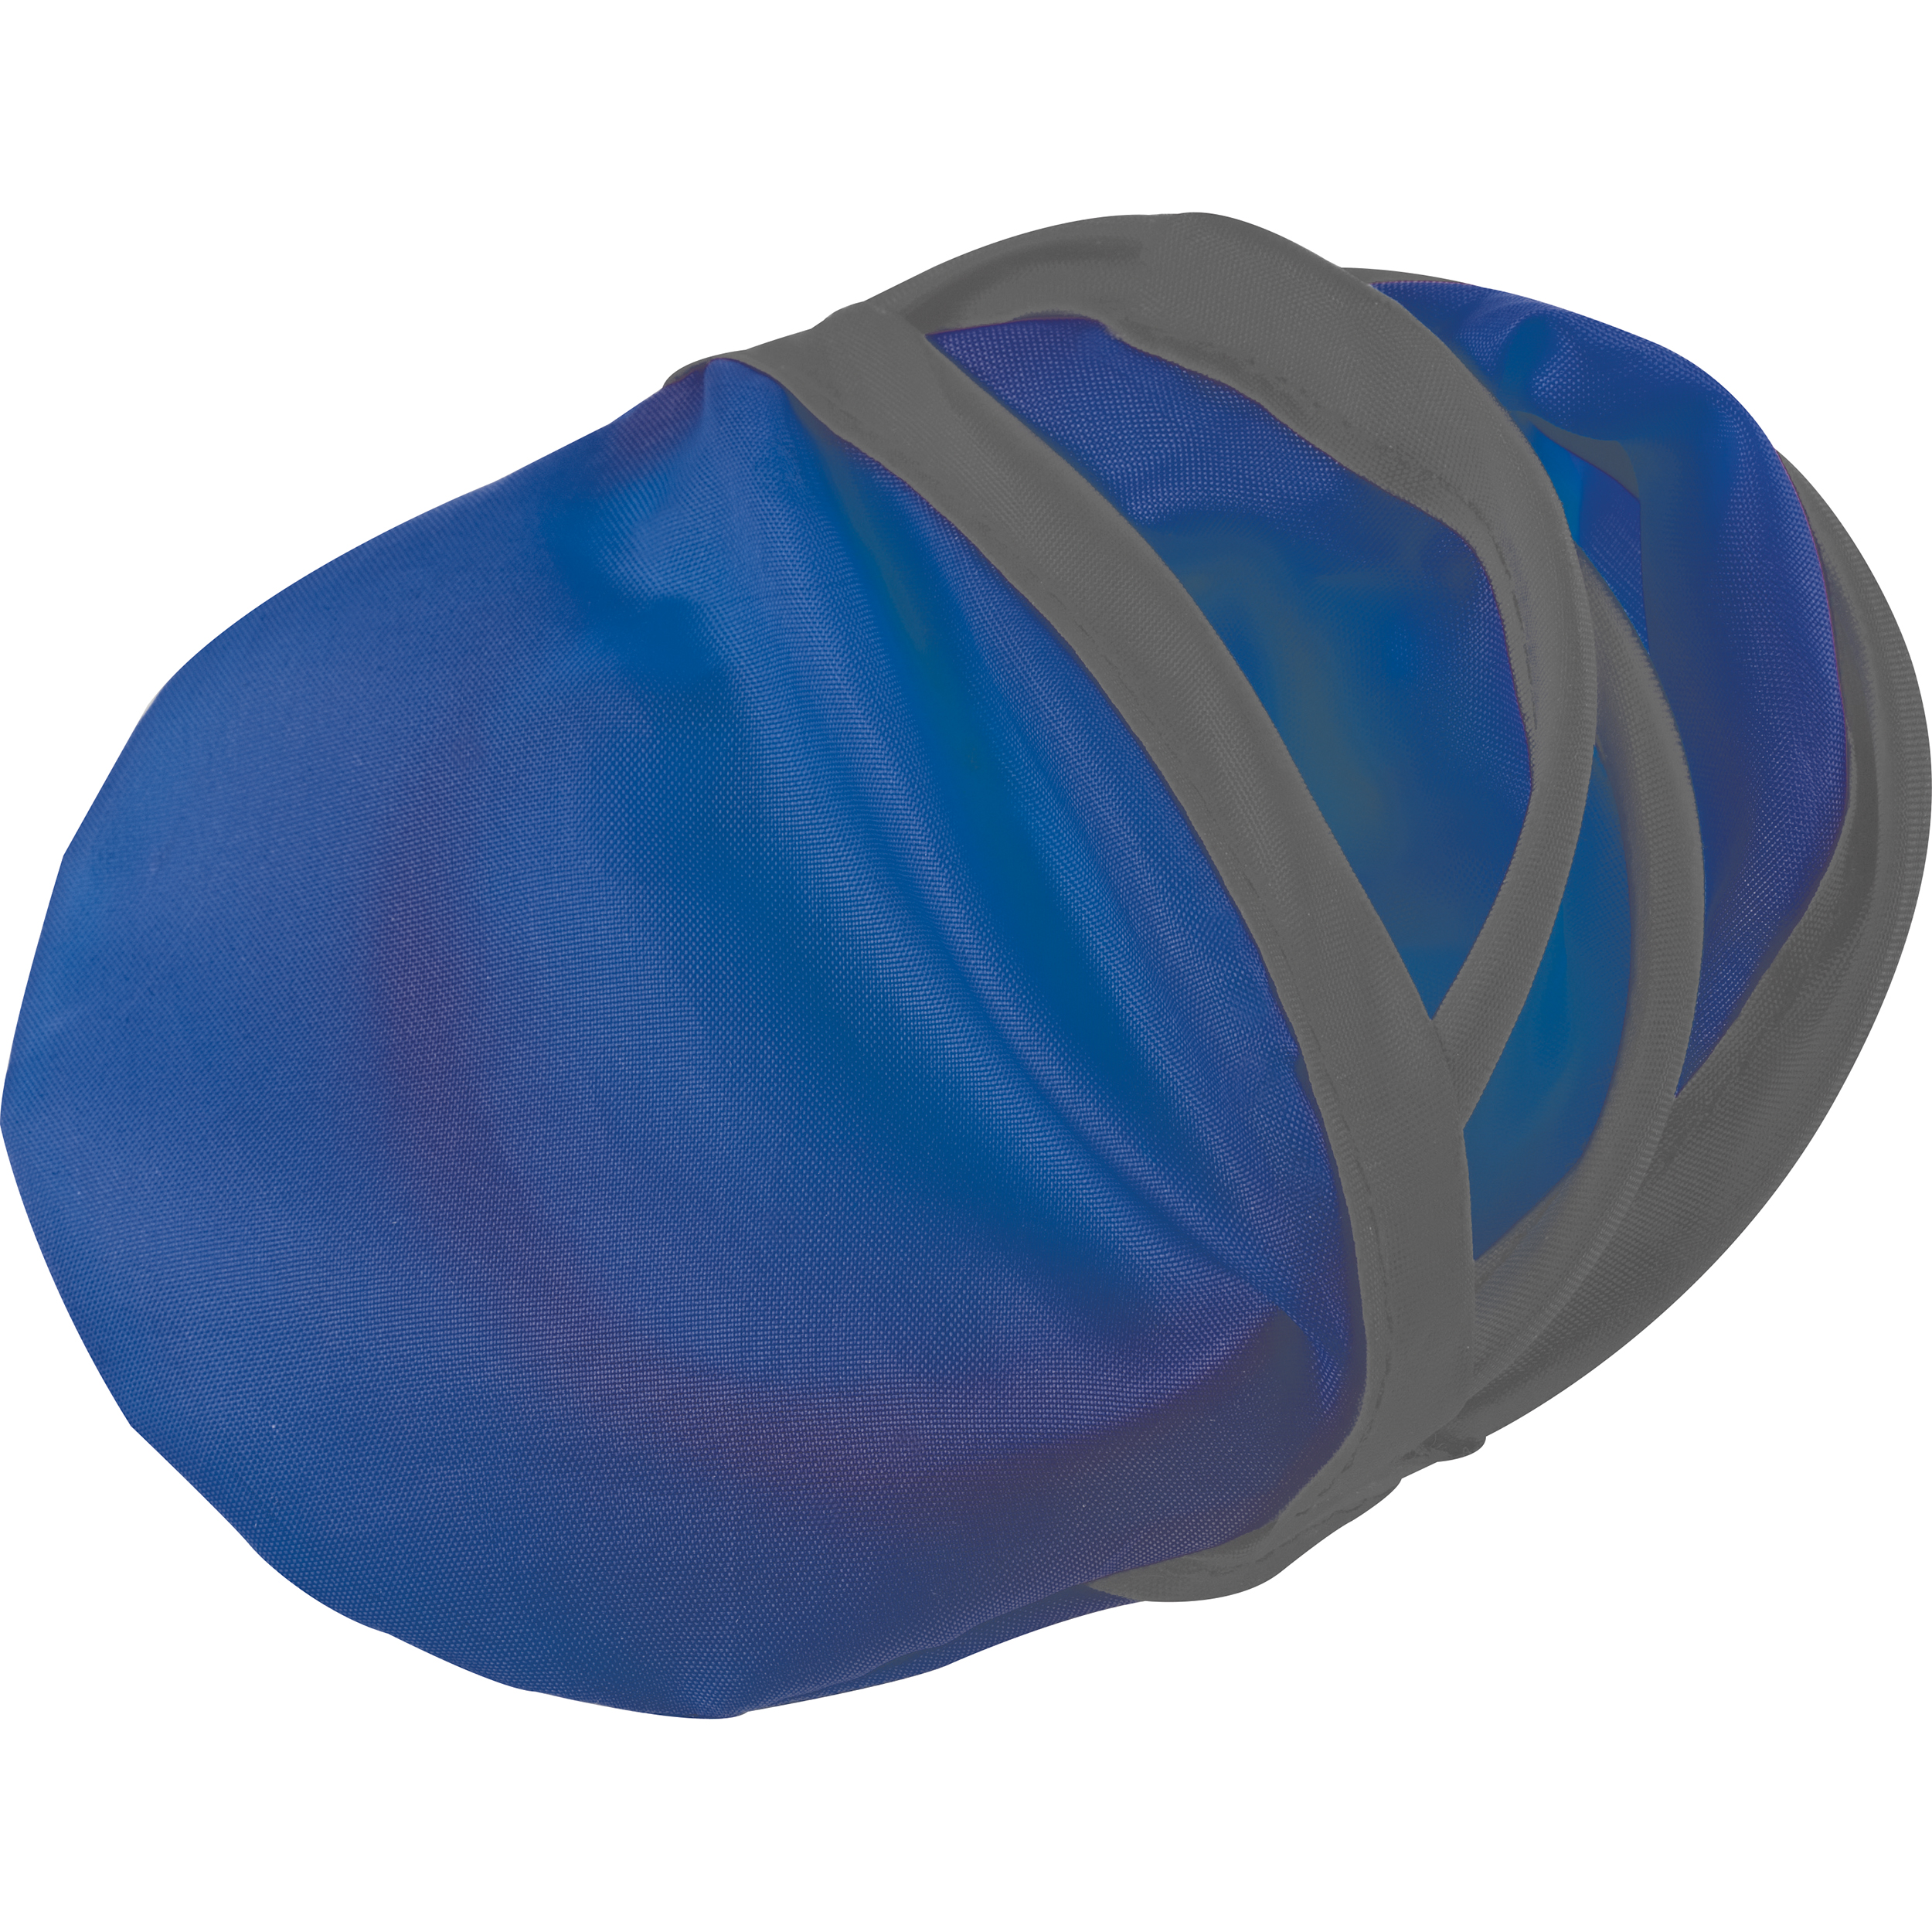 Foldable frisbee with a polyester case